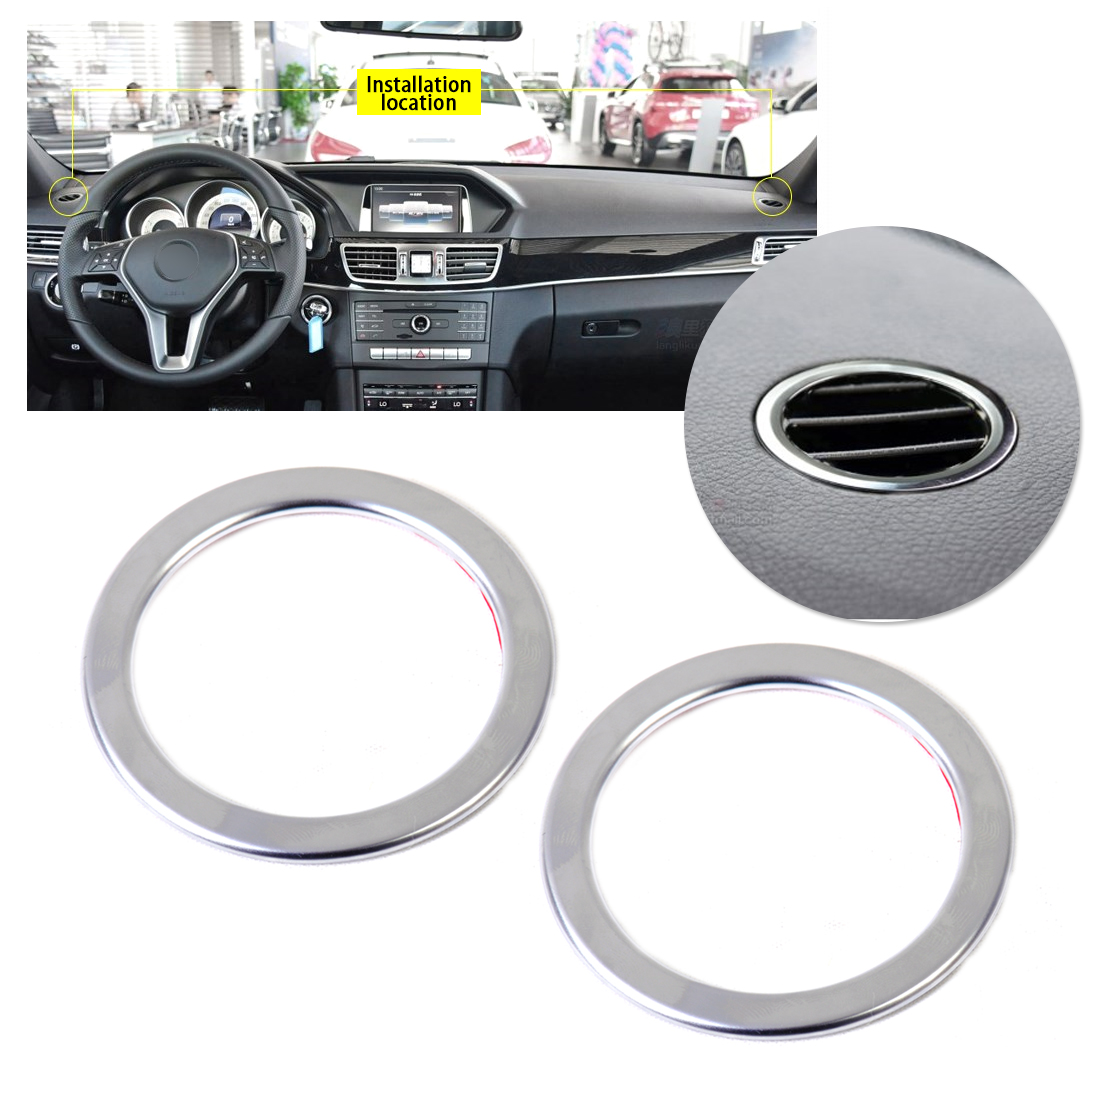 DWCX Car Styling 2pcs Chrome Interior AC Air Vent Outlet Trim Cover Ring for <font><b>Mercedes</b></font> Benz <font><b>W246</b></font> <font><b>B180</b></font> B200 2012 2013 2014 2015 image